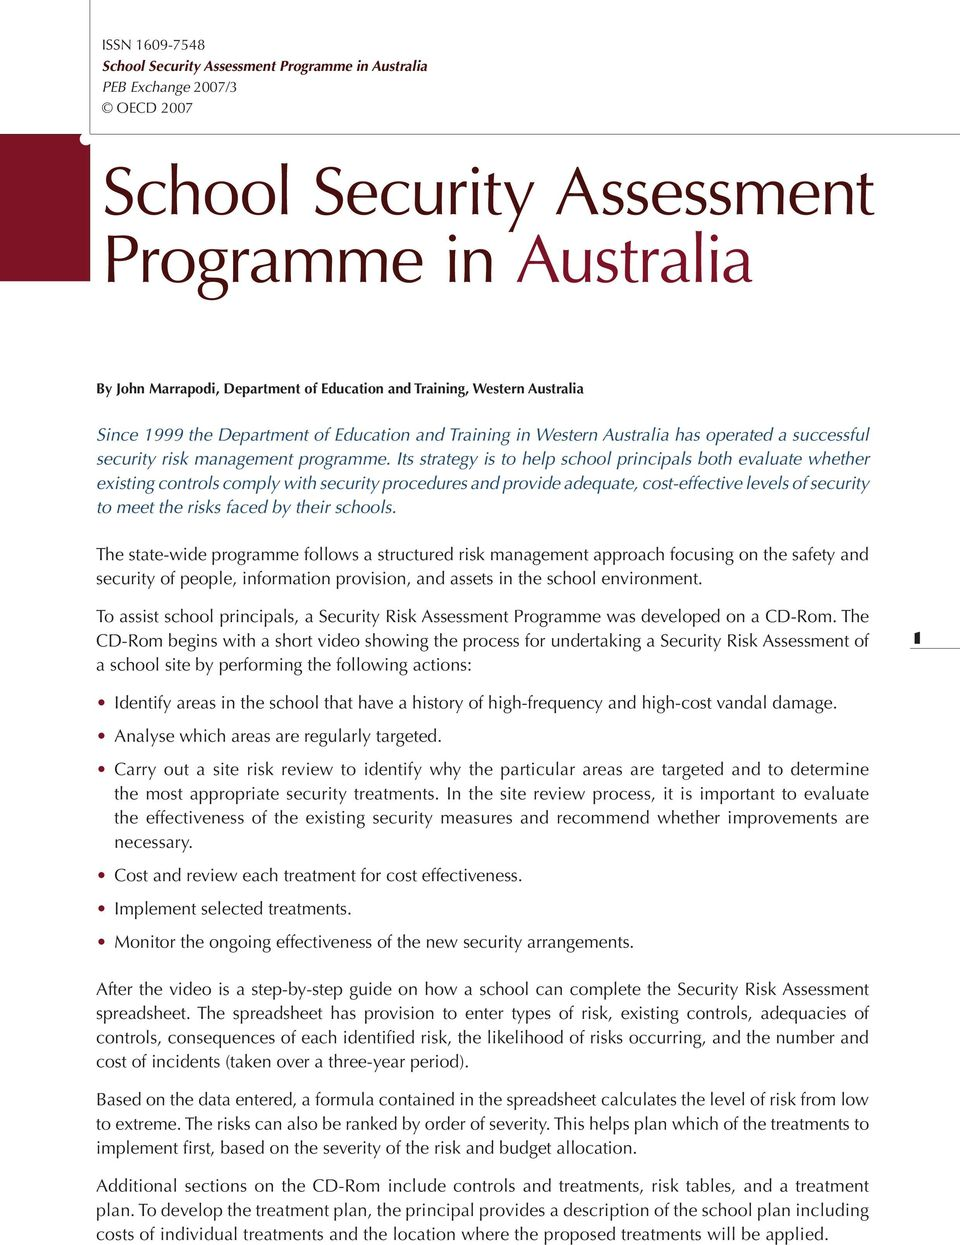 Its strategy is to help school principals both evaluate whether existing controls comply with security procedures and provide adequate, cost-effective levels of security to meet the risks faced by